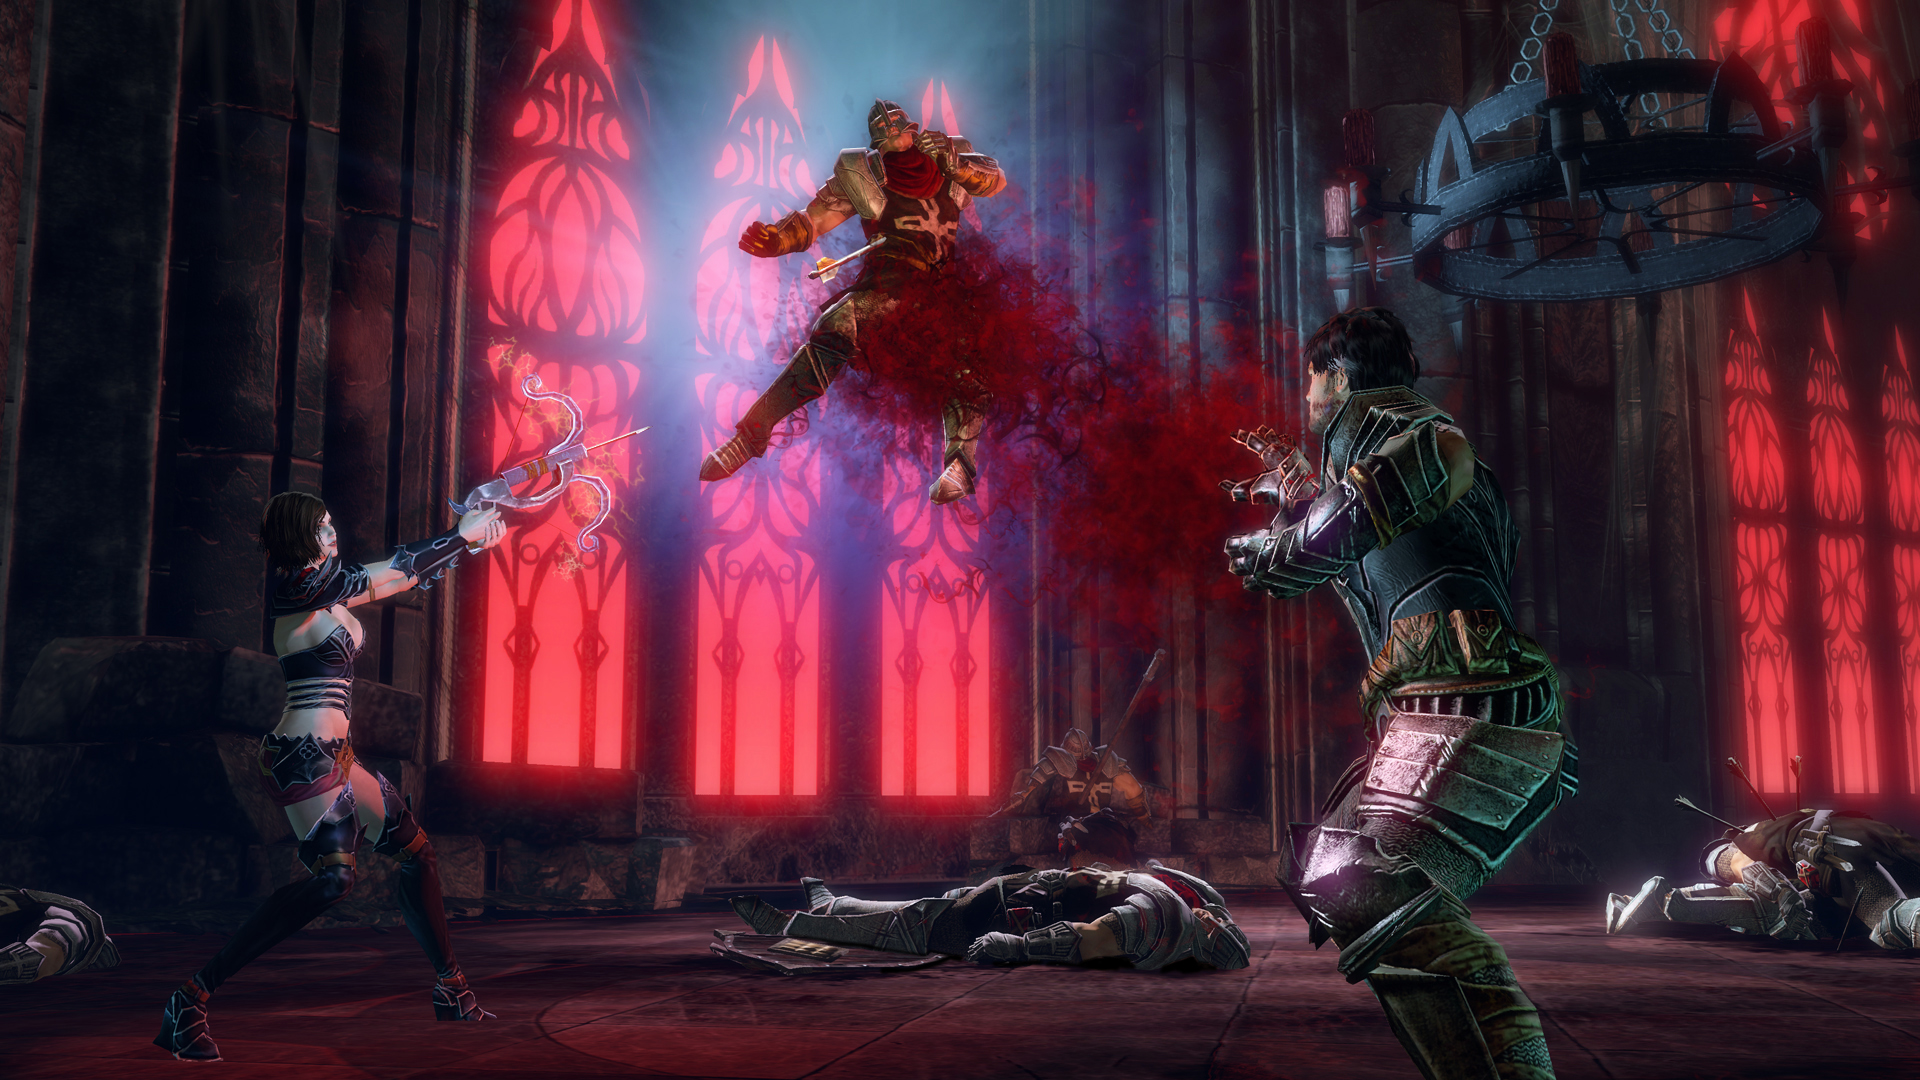 blood knights screenshot signature lift draw blood cathedral Xbox One Gets Eight More Backwards Compatible Games